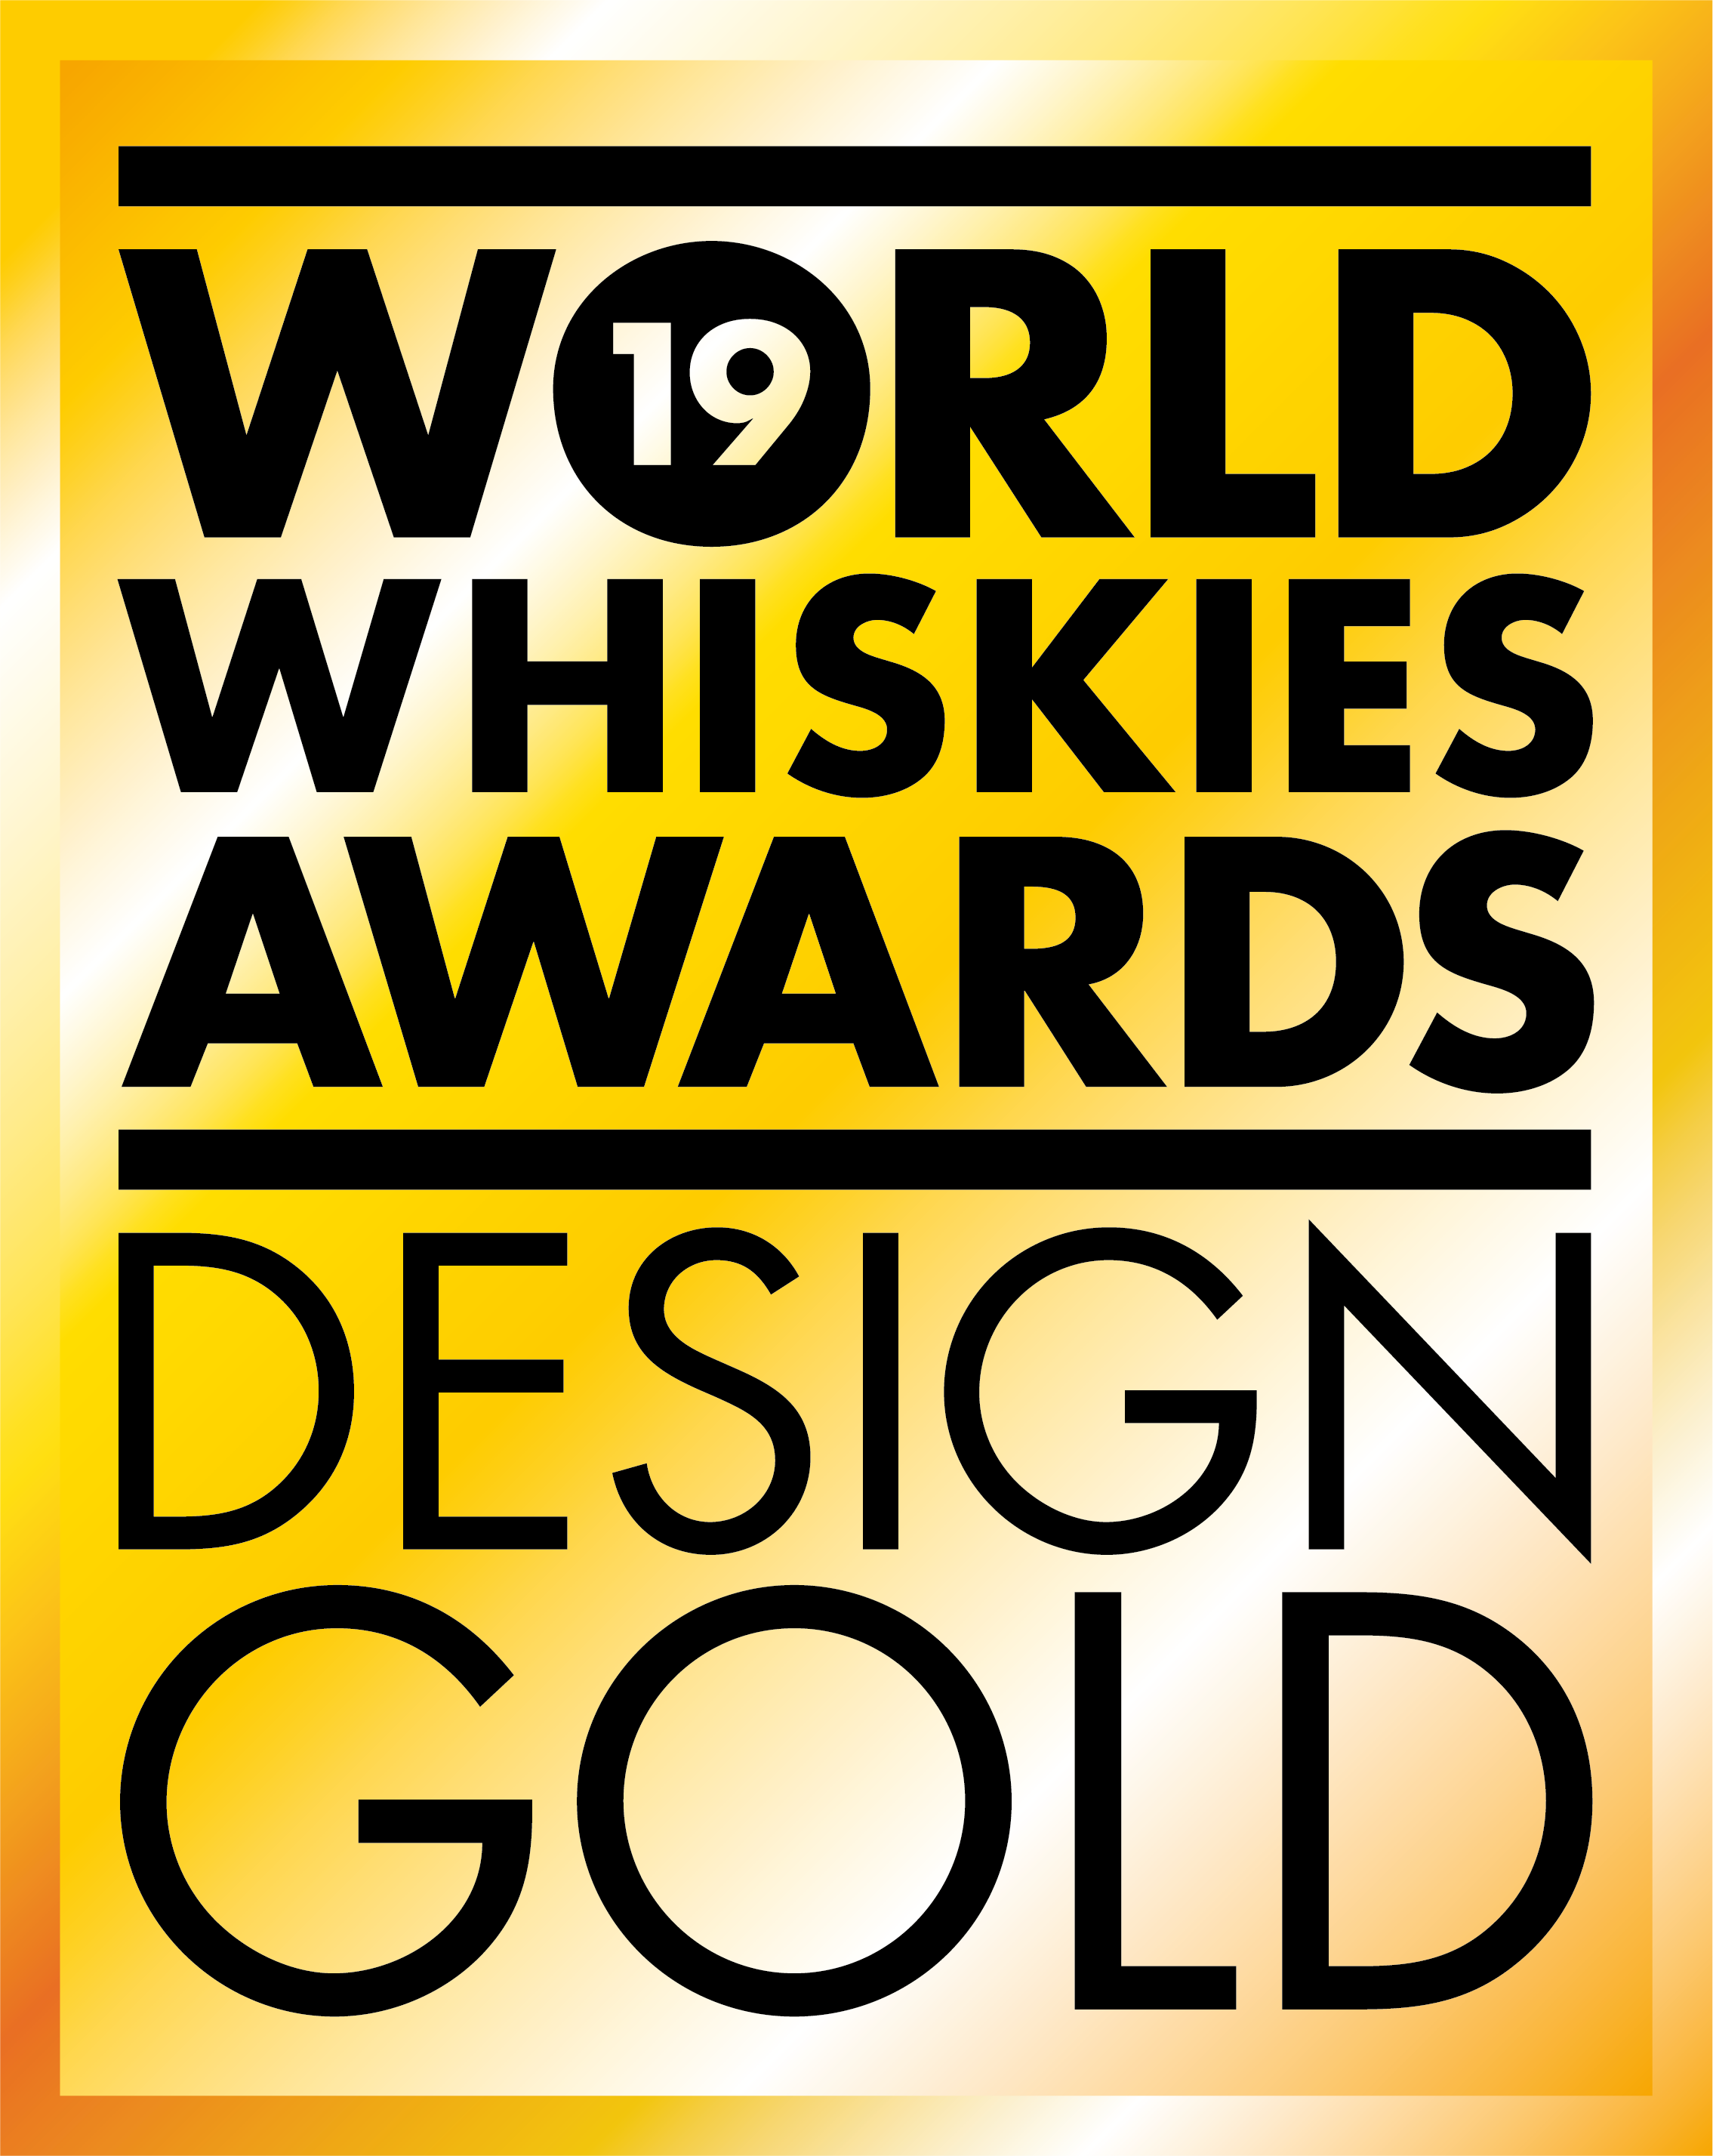 WWA19-Design-Gold2.png